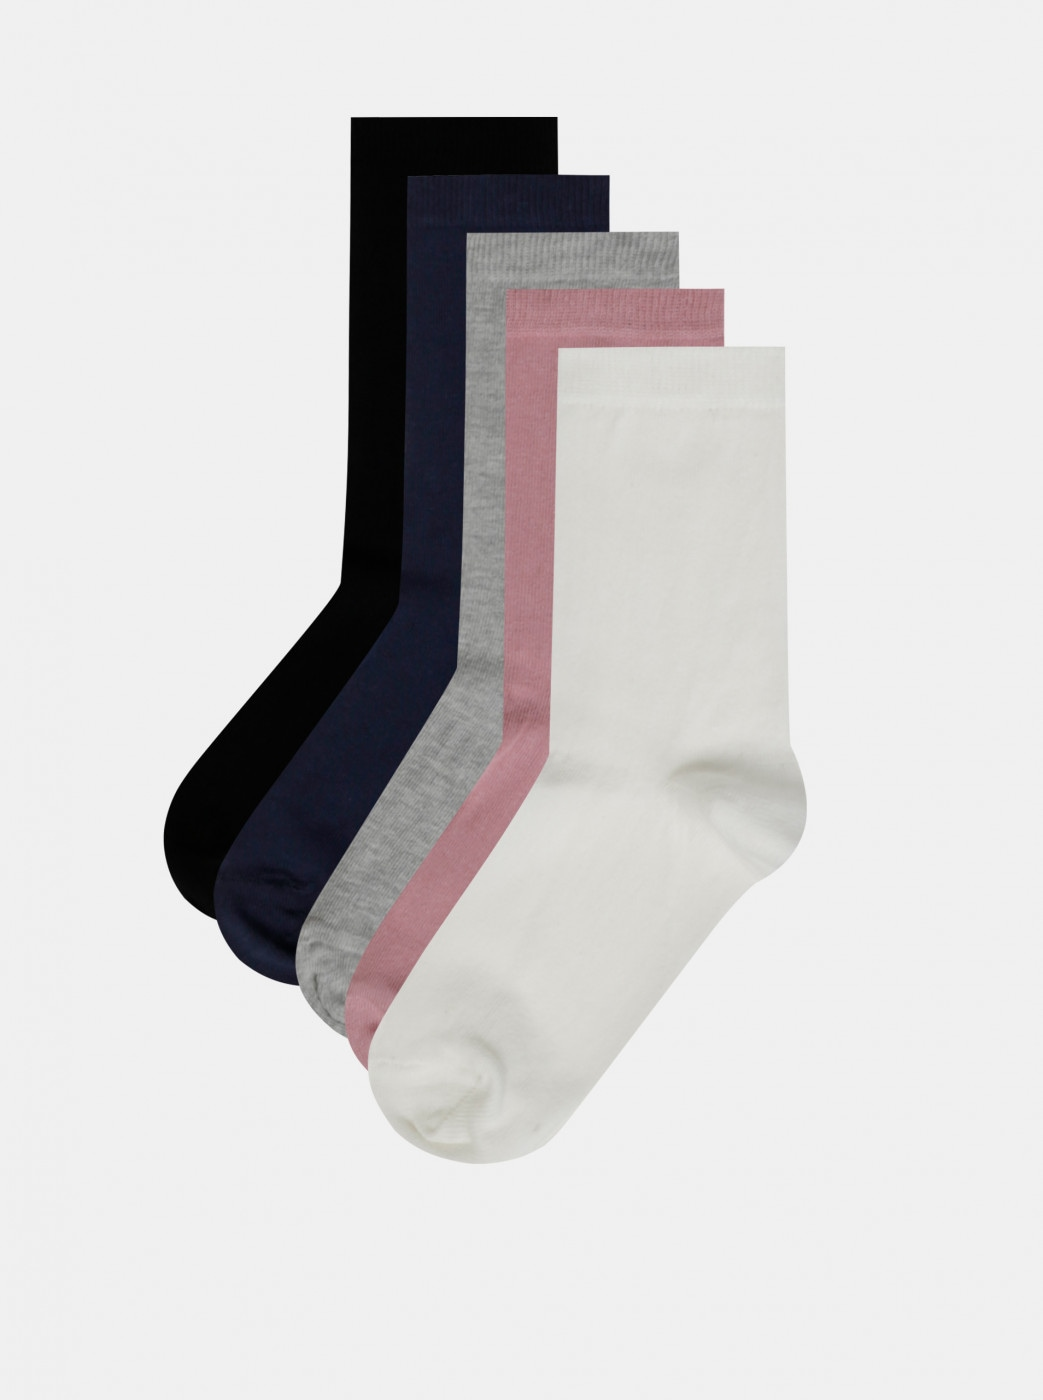 Set of three pairs of socks in white, grey and black M&Co